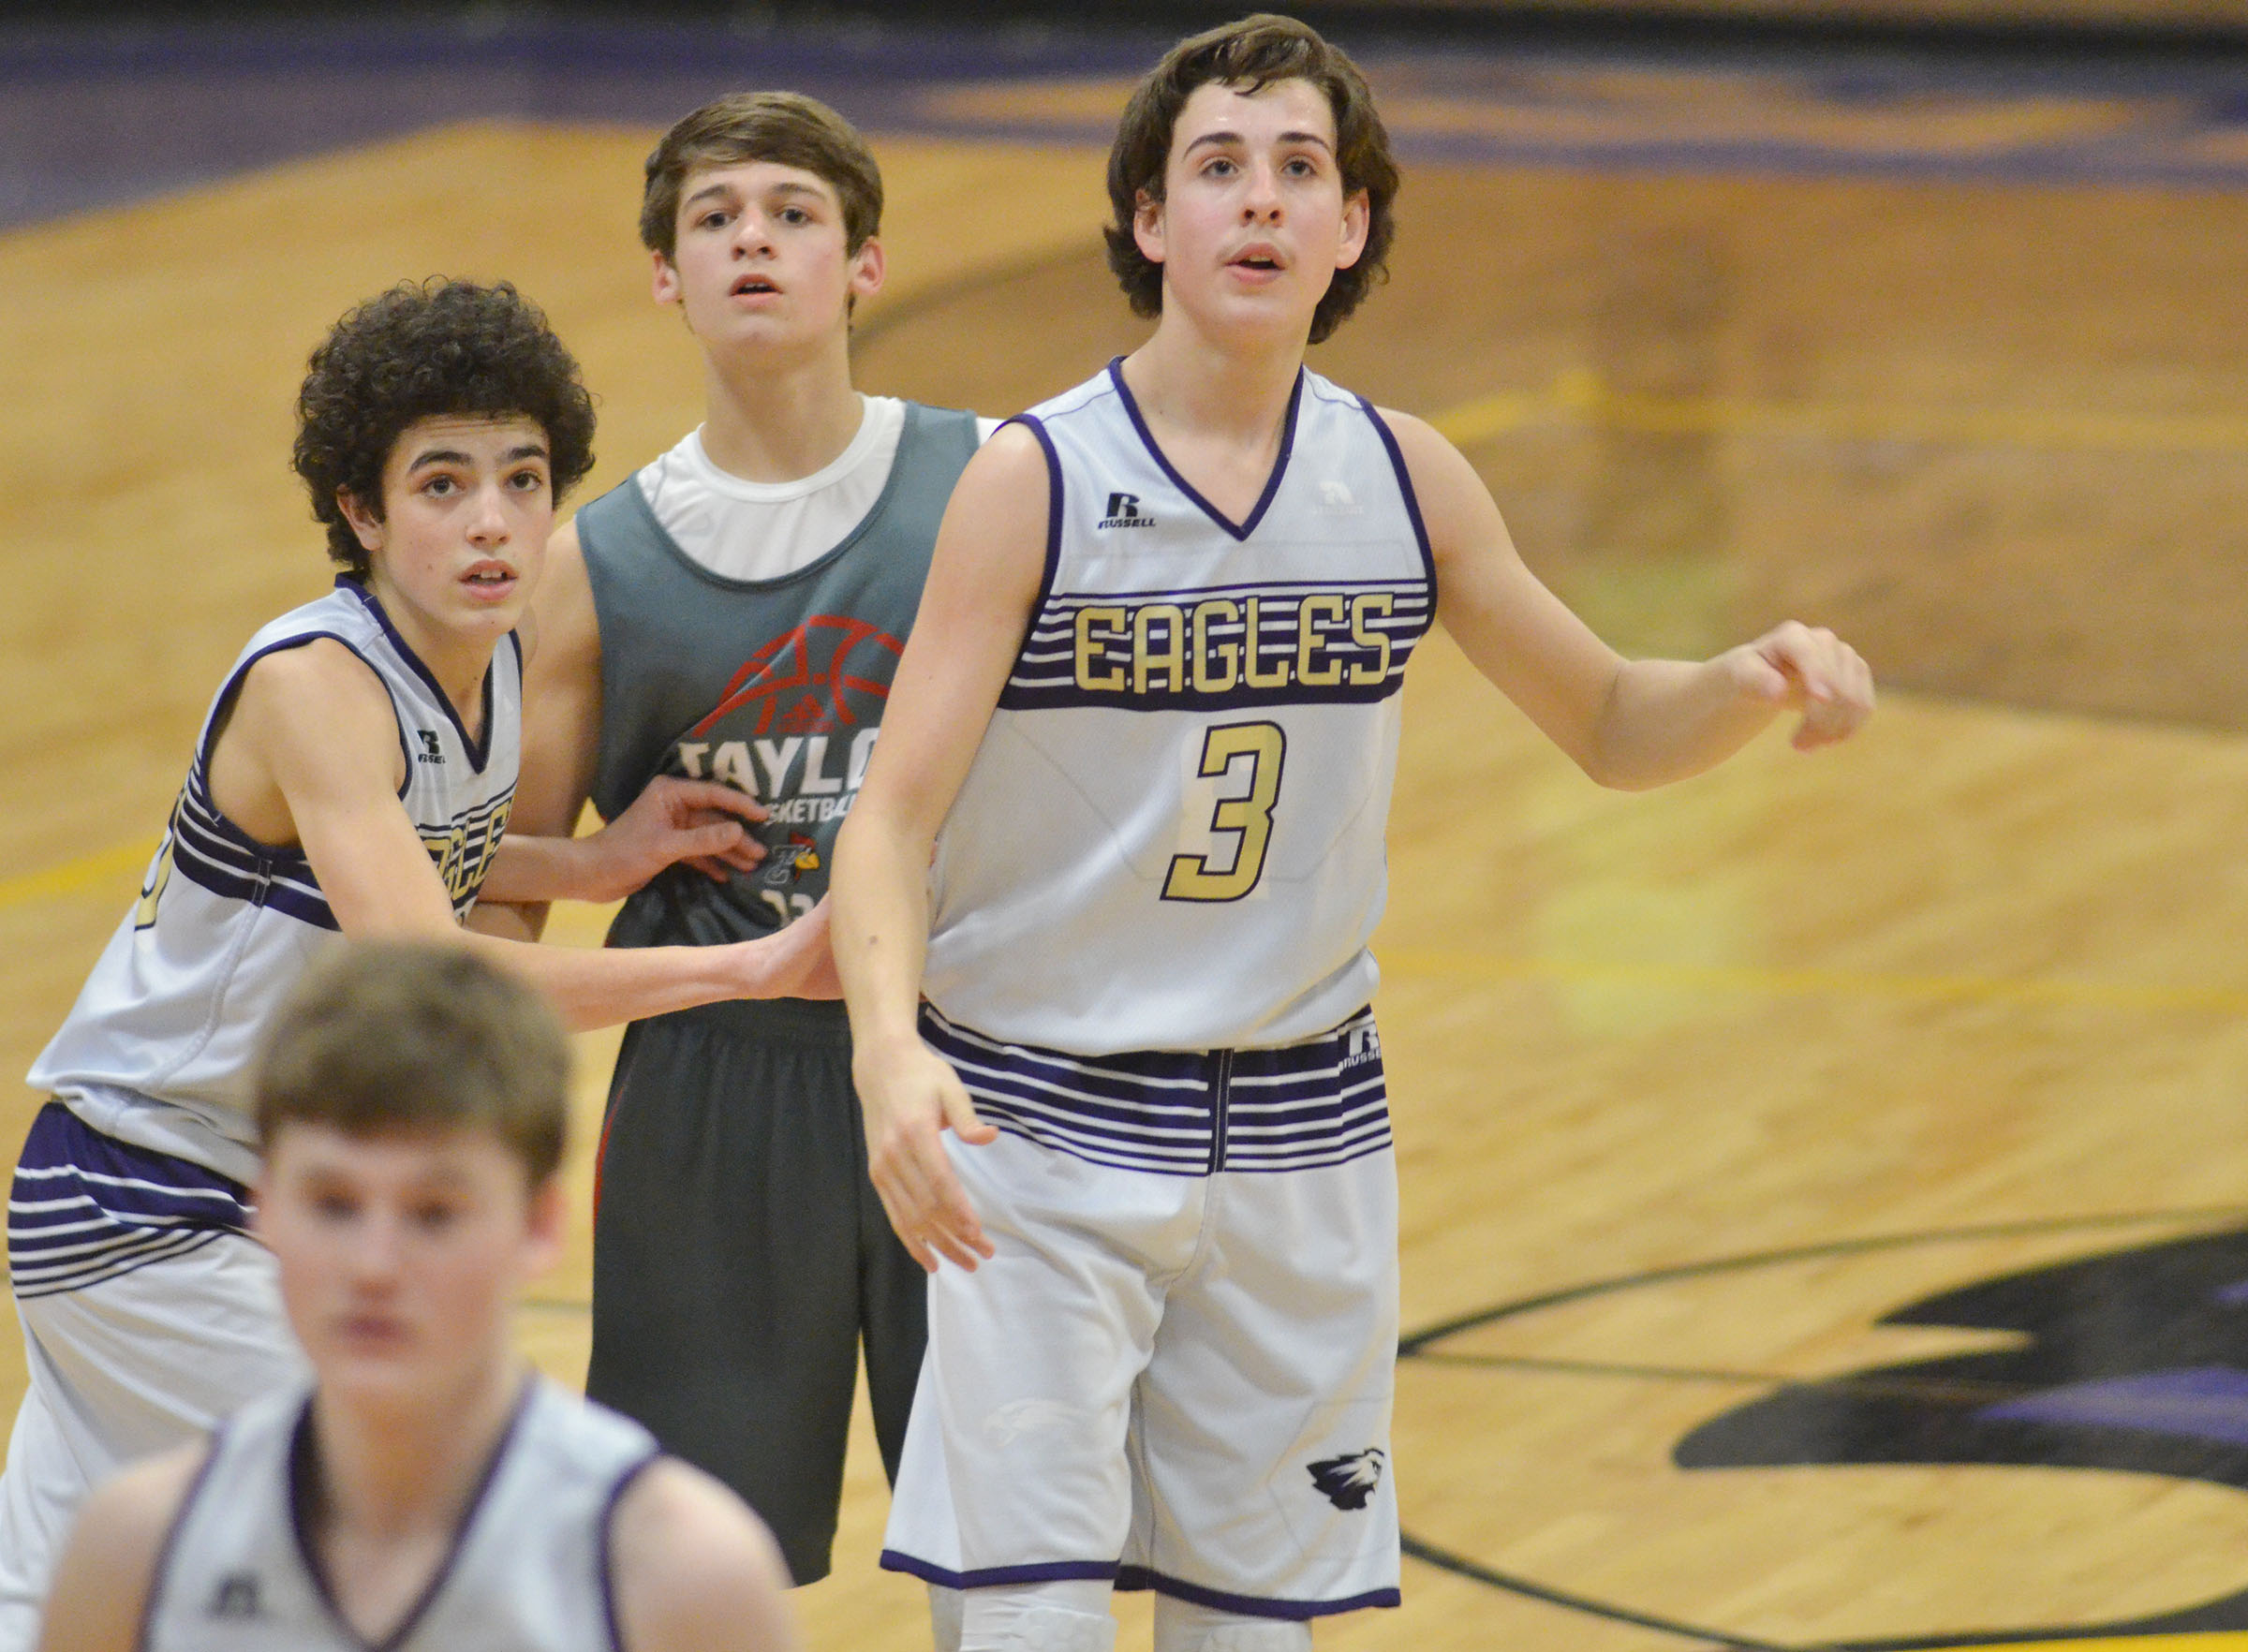 CMS eighth-graders Kameron Smith, at left, and John Orberson watch as the overtime period expires.